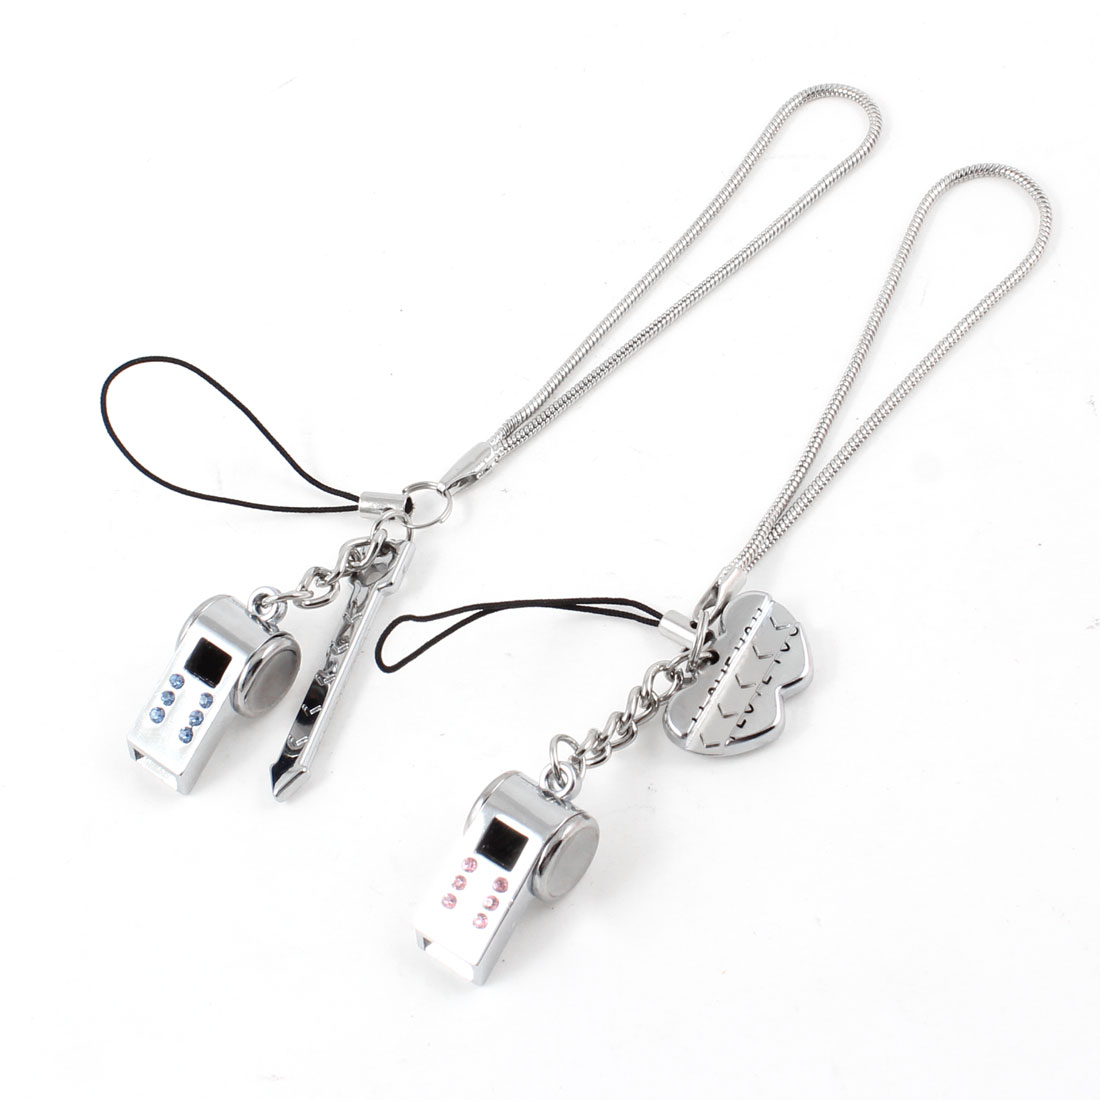 Lovers Alloy Whistle Arrow Heart Decoration Keychain Bag Pendant 2 Pcs